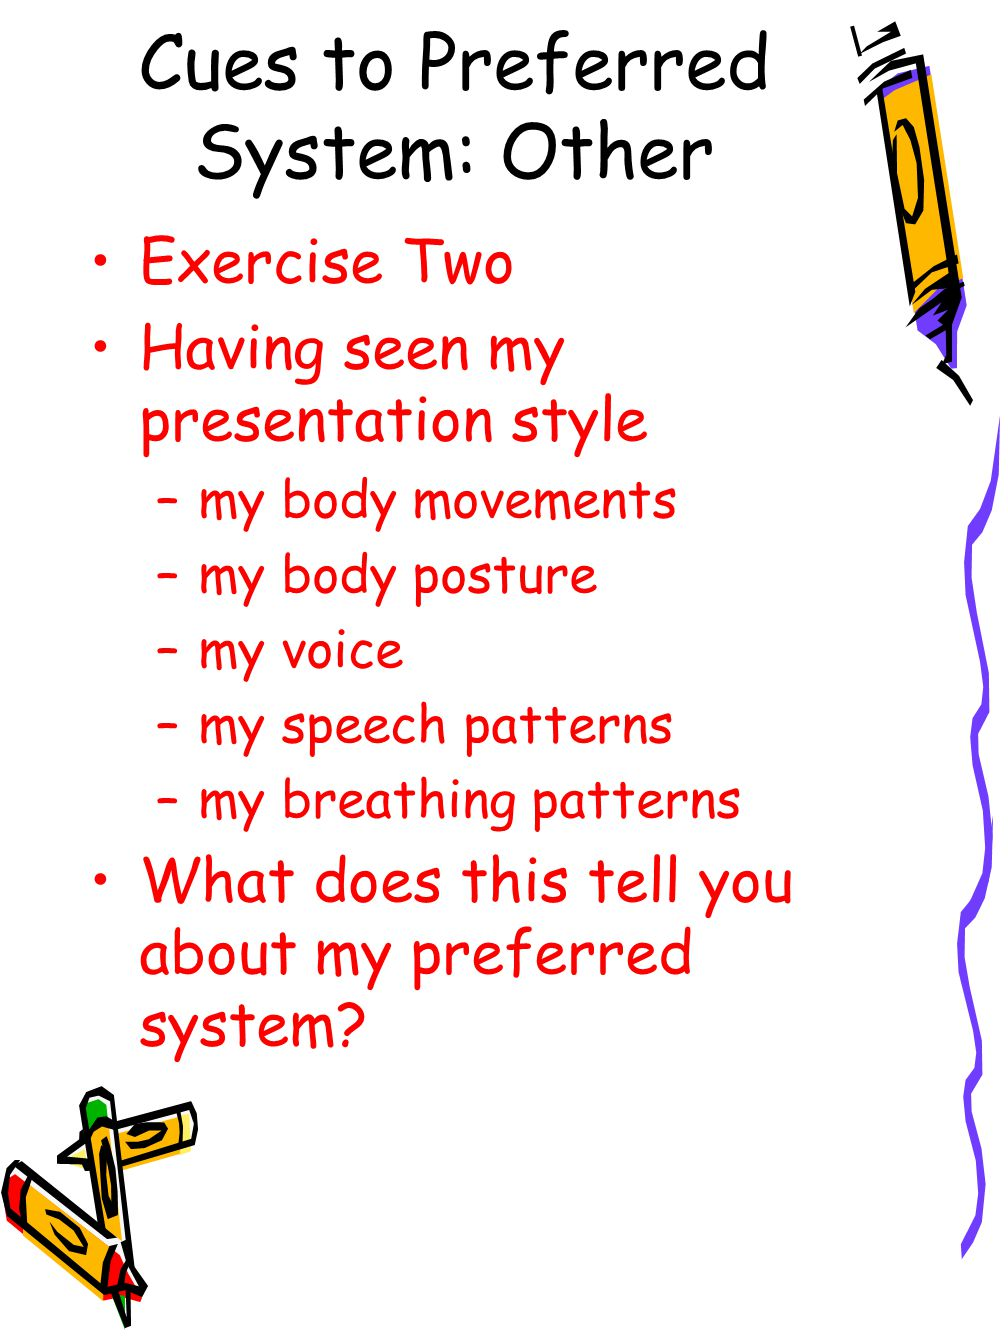 Cues to Preferred System: Other Exercise Two Having seen my presentation style –my body movements –my body posture –my voice –my speech patterns –my breathing patterns What does this tell you about my preferred system